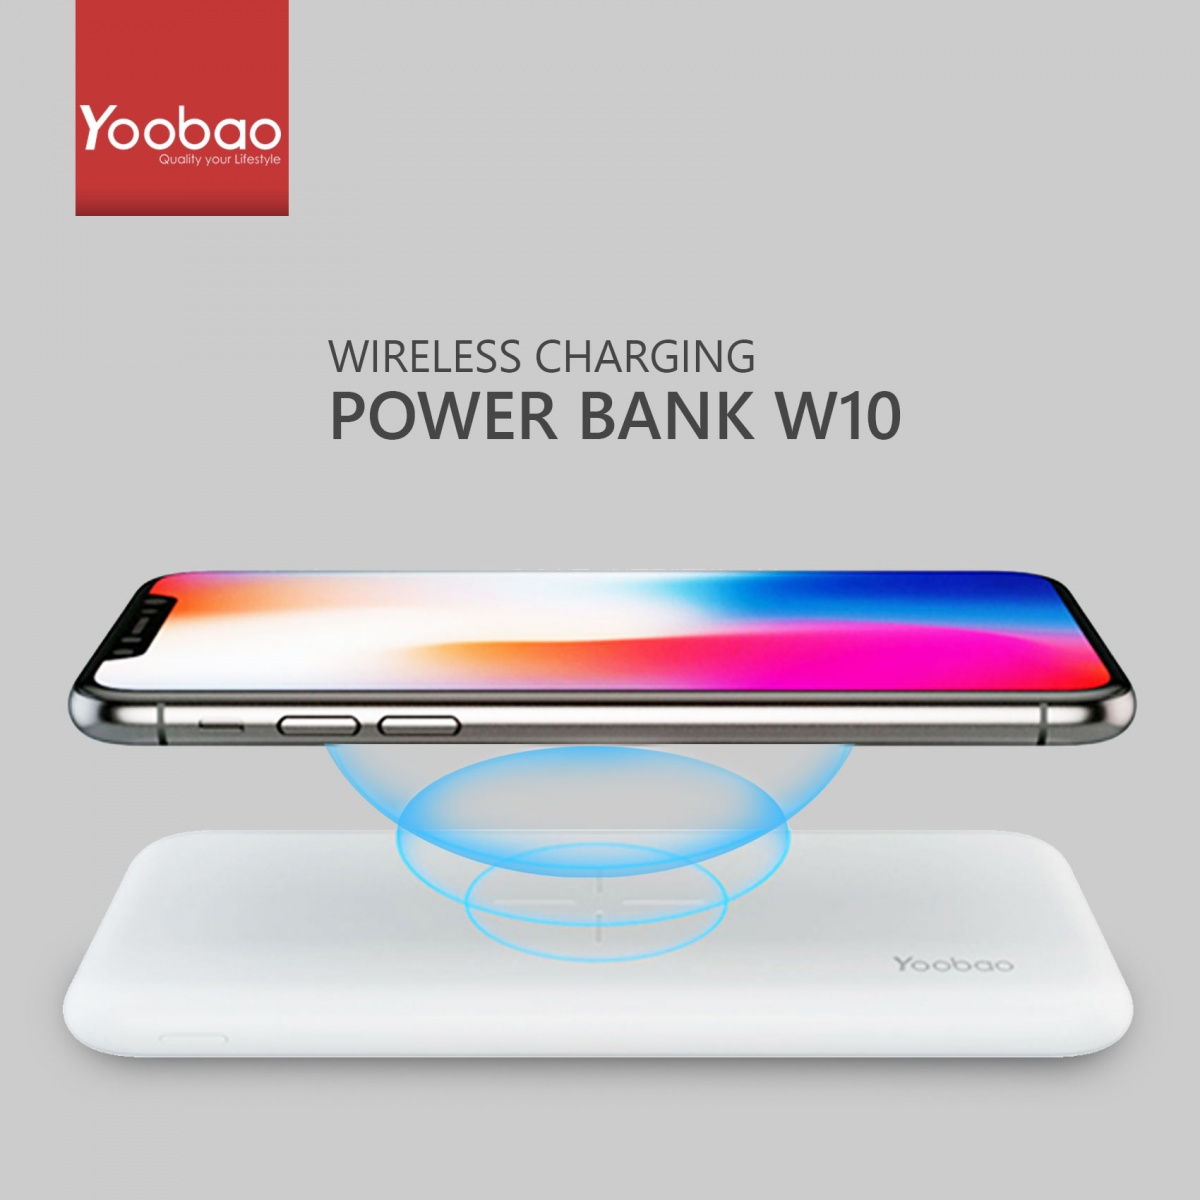 Yoobao W10 Wireless Power Bank - White